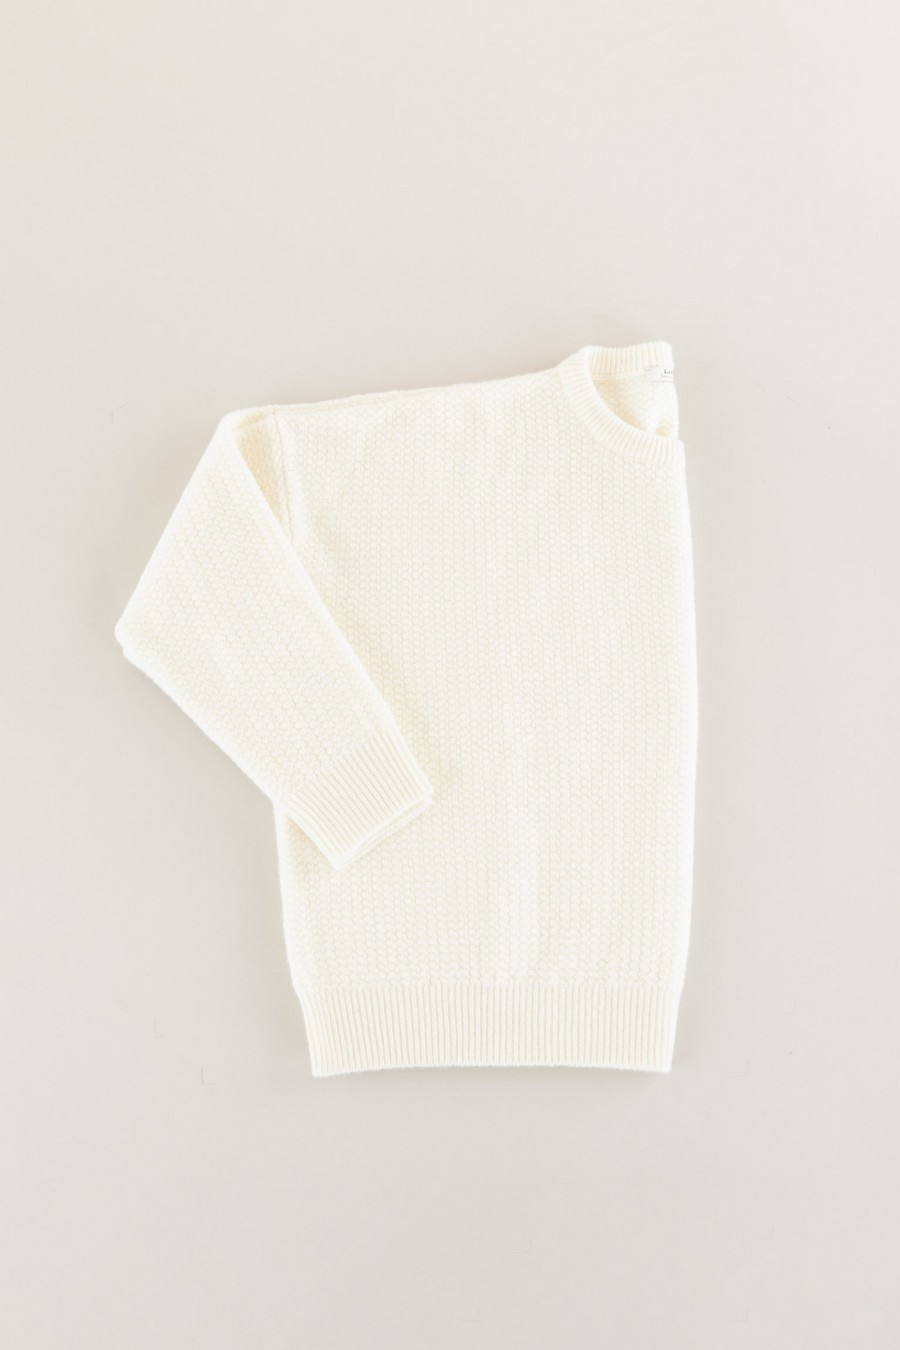 White Lazzari jumper